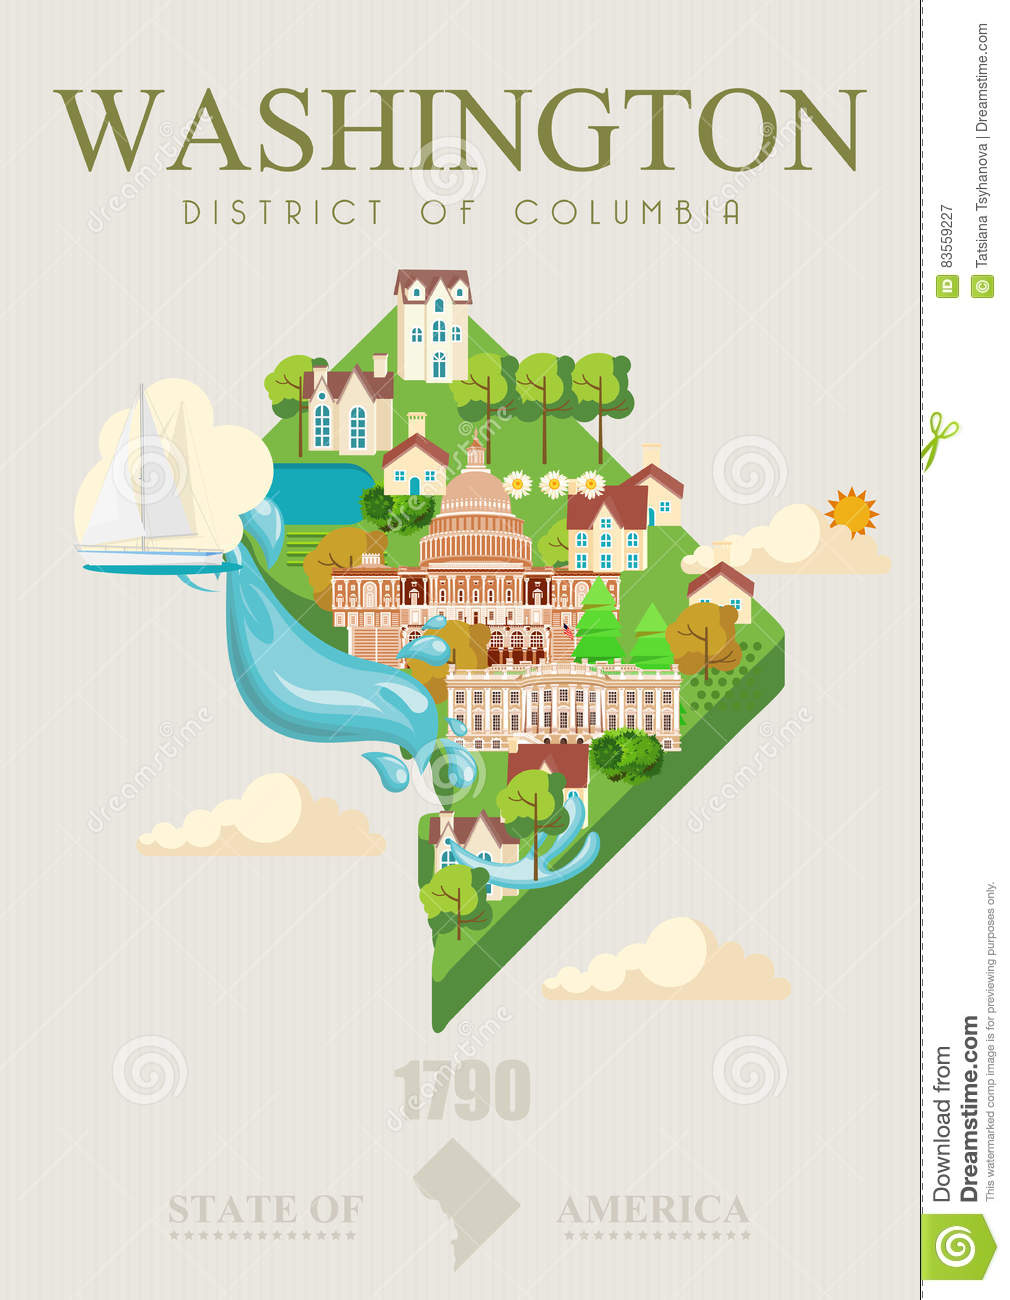 District Of Columbia Vector Poster Usa Travel Illustration United